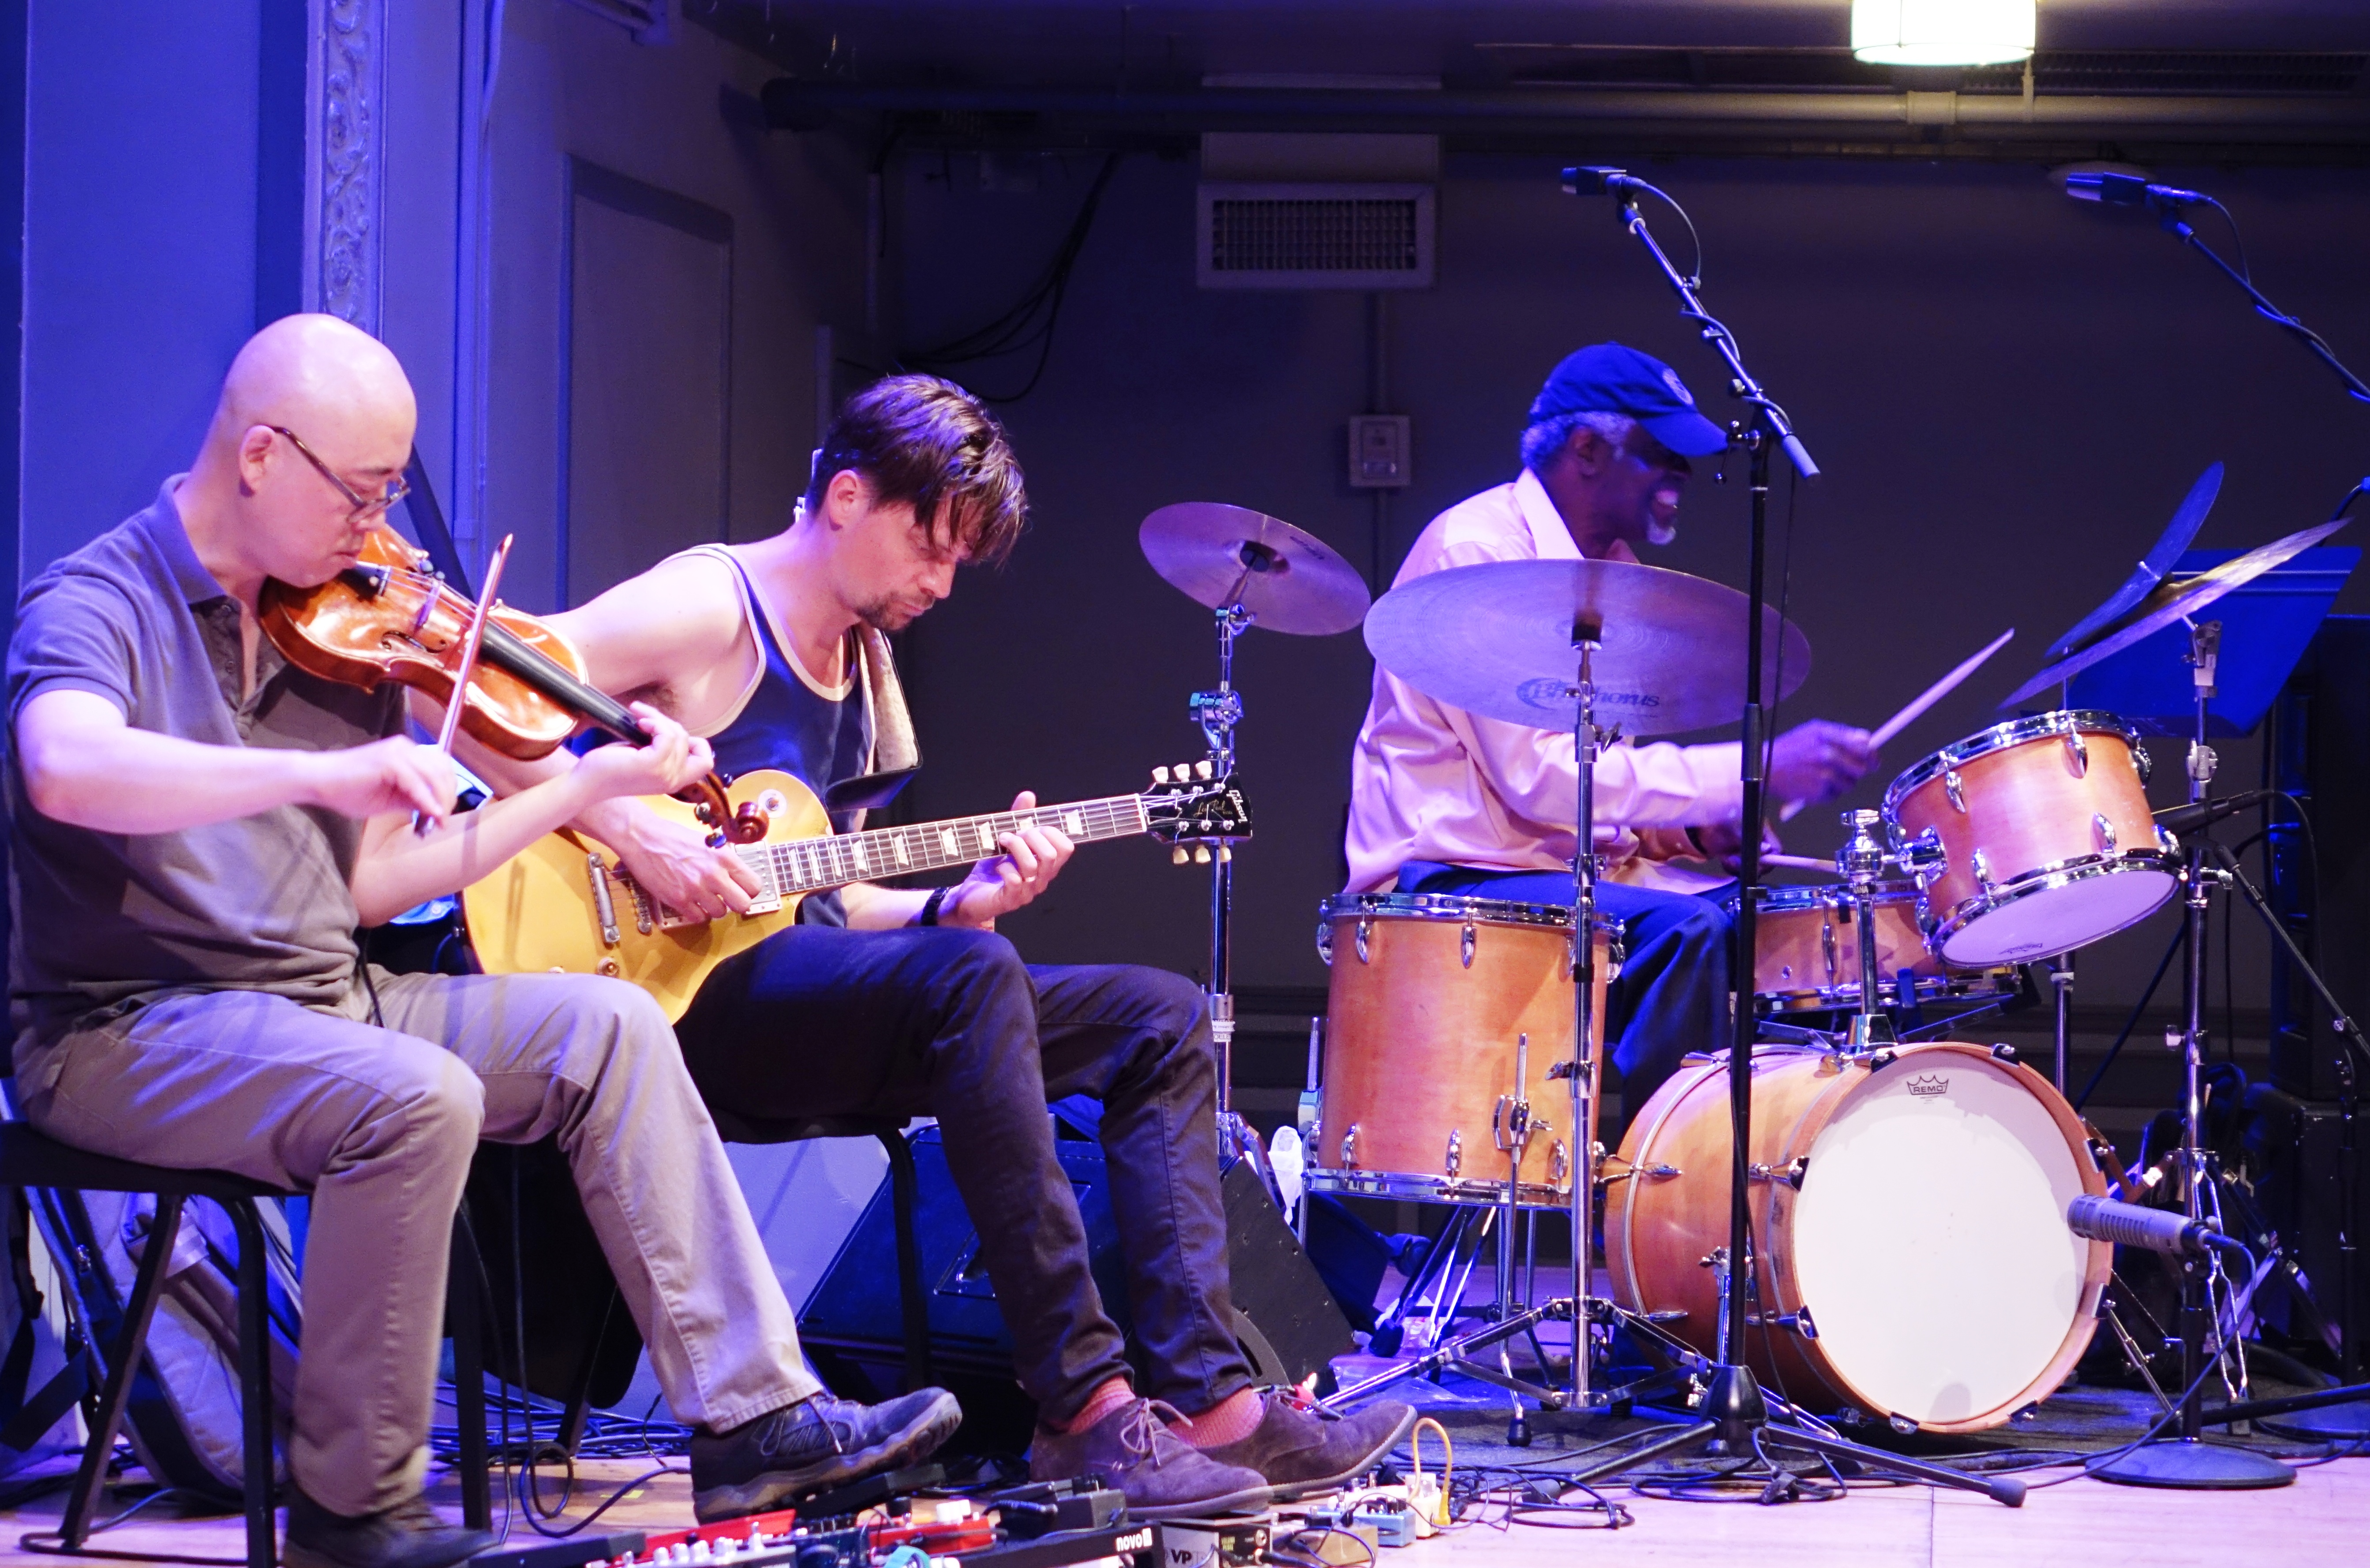 Jason Kao Hwang, Anders Nilsson and Michael TA Thompson at the Vision Festival at Roulette, Brooklyn in May 2018